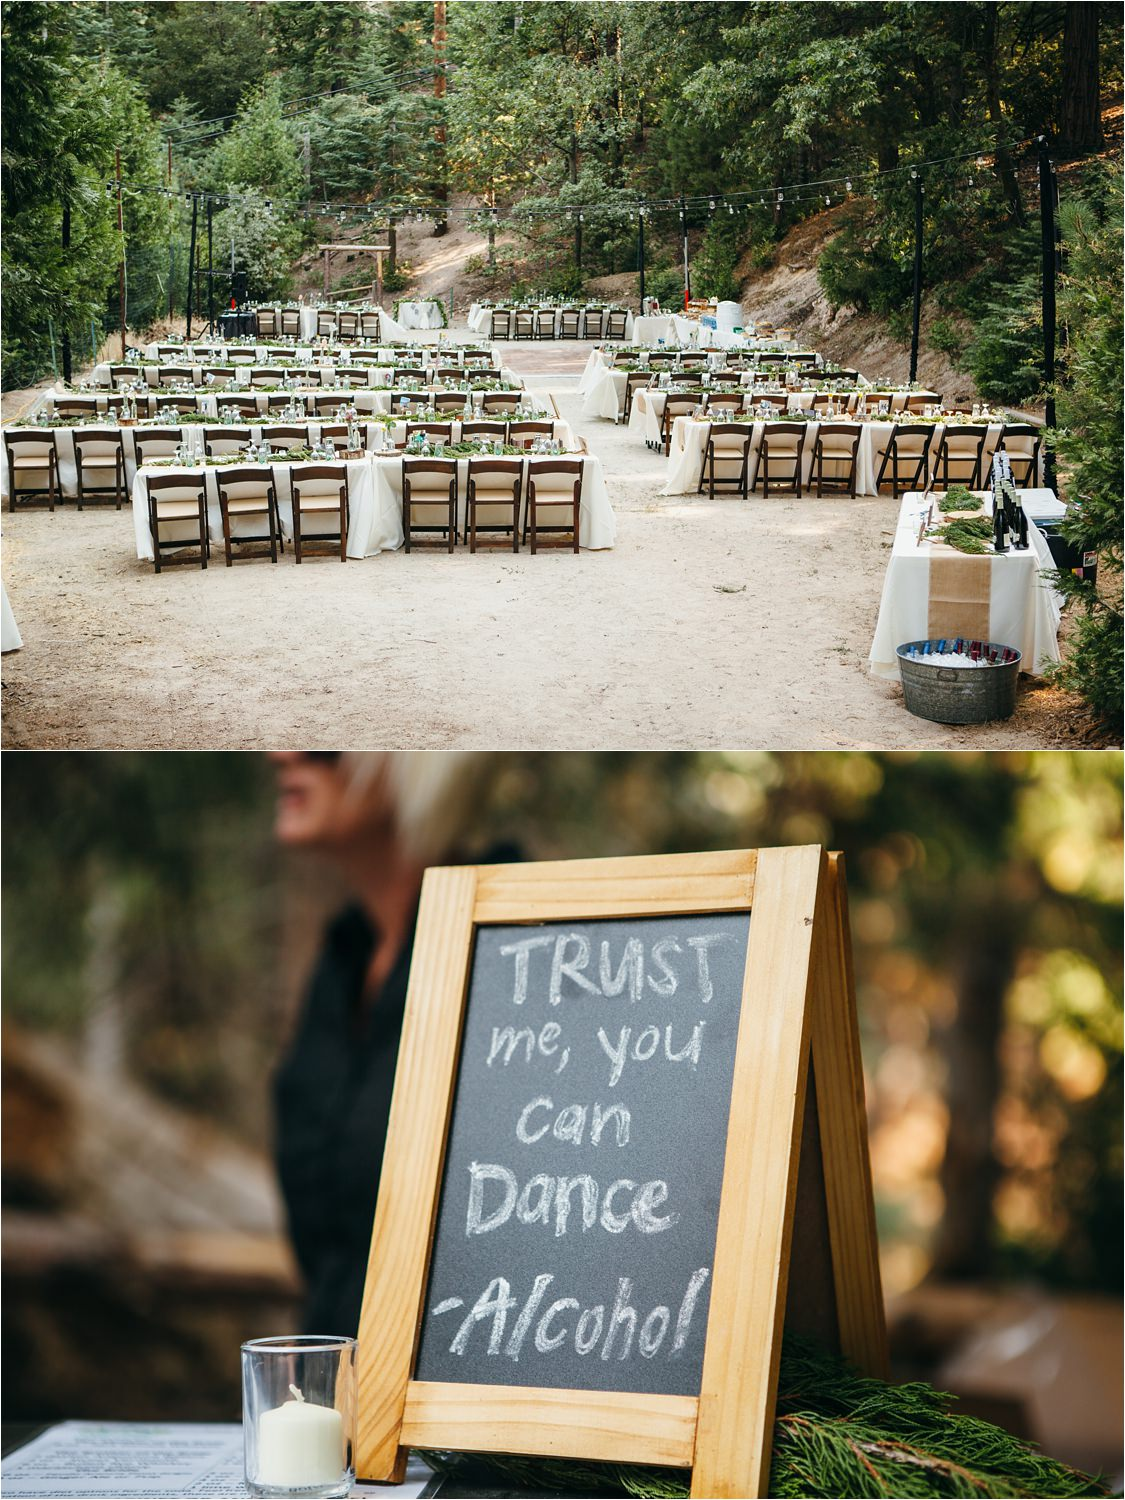 Mountain Wedding Decor - Mountain Wedding Ideas - https://brittneyhannonphotography.com